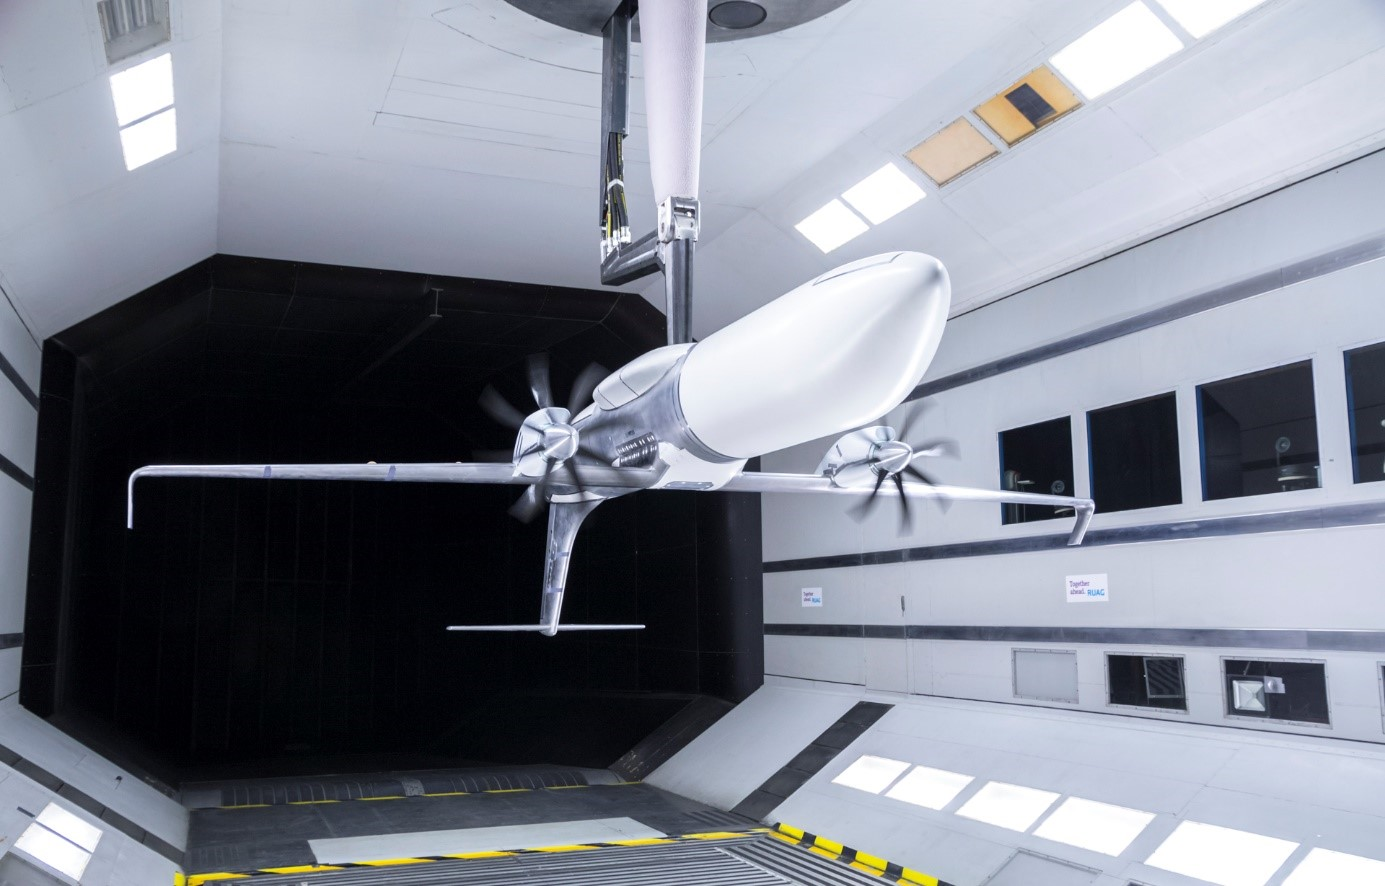 The LOSITA wind tunnel model at RUAG.